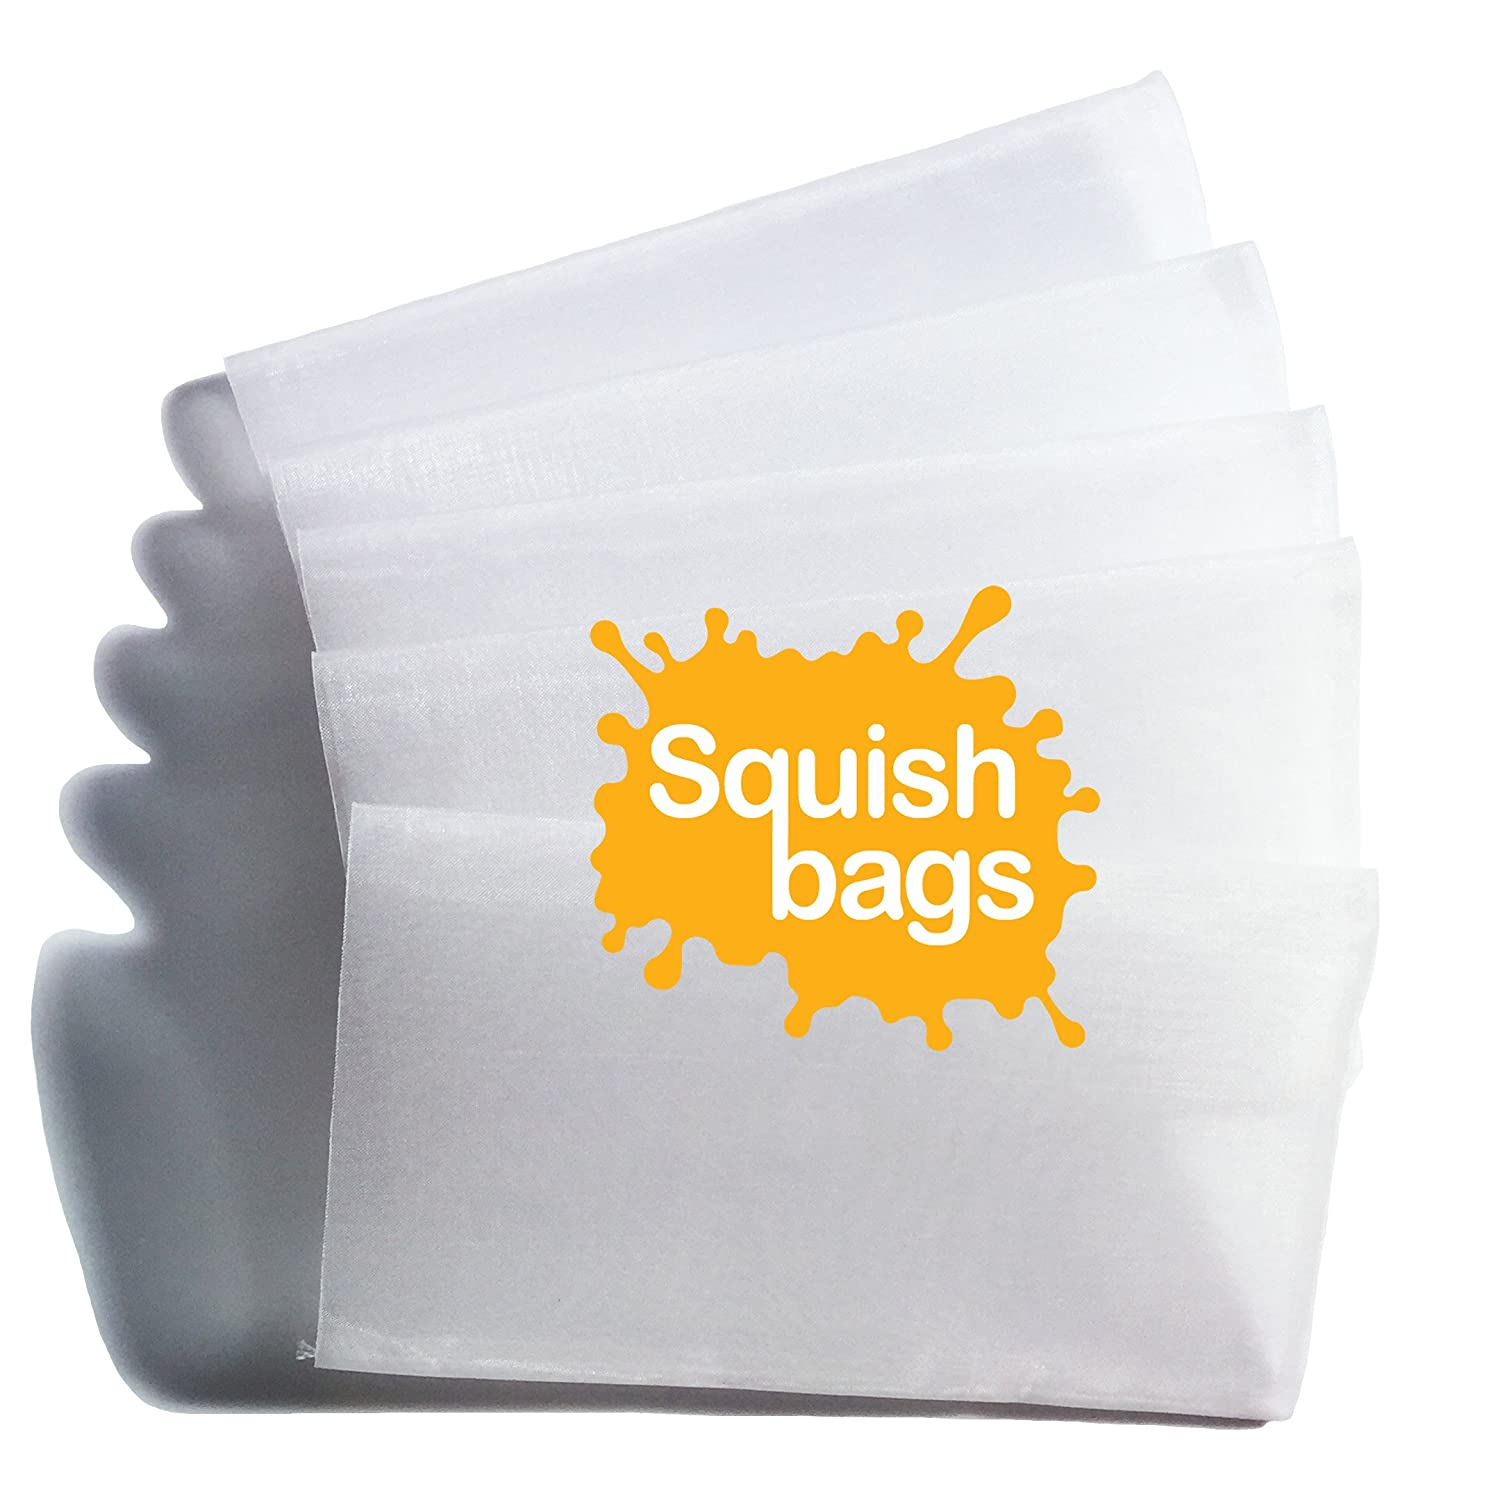 Squish Bags 90 micron Rosin Press Screen Bags 2.5 x 4.5 - 100 pack